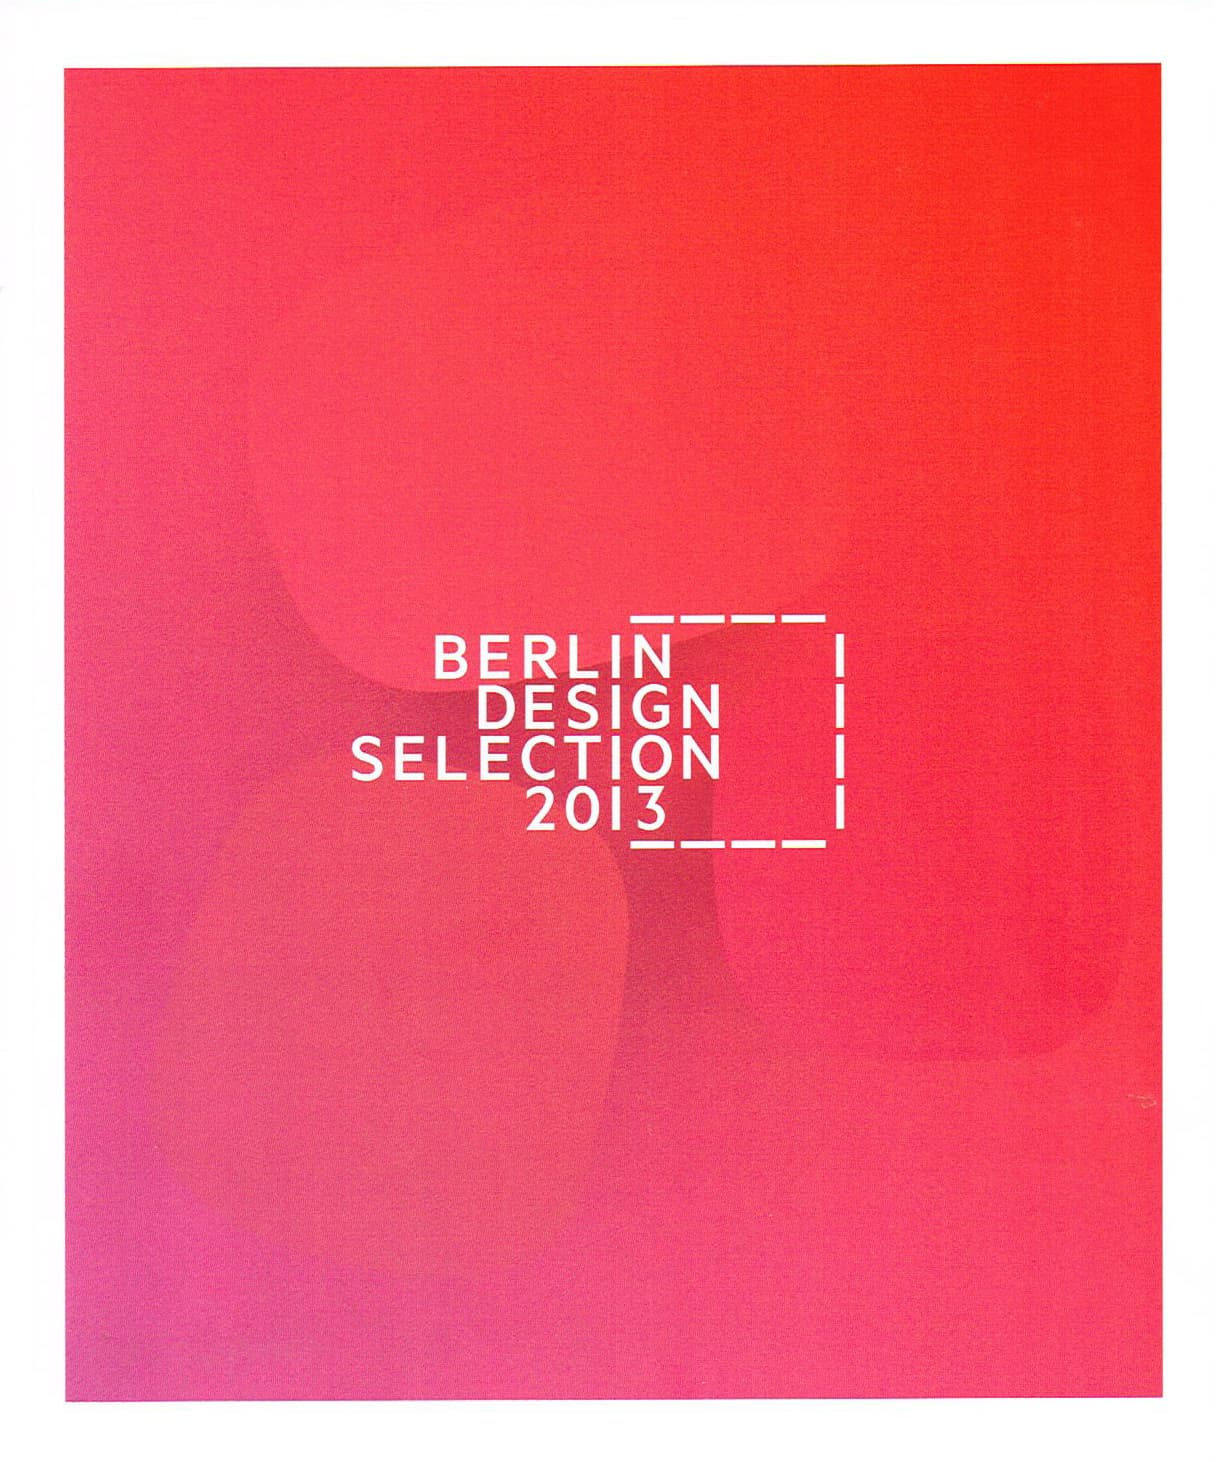 berlindesignselection_cover